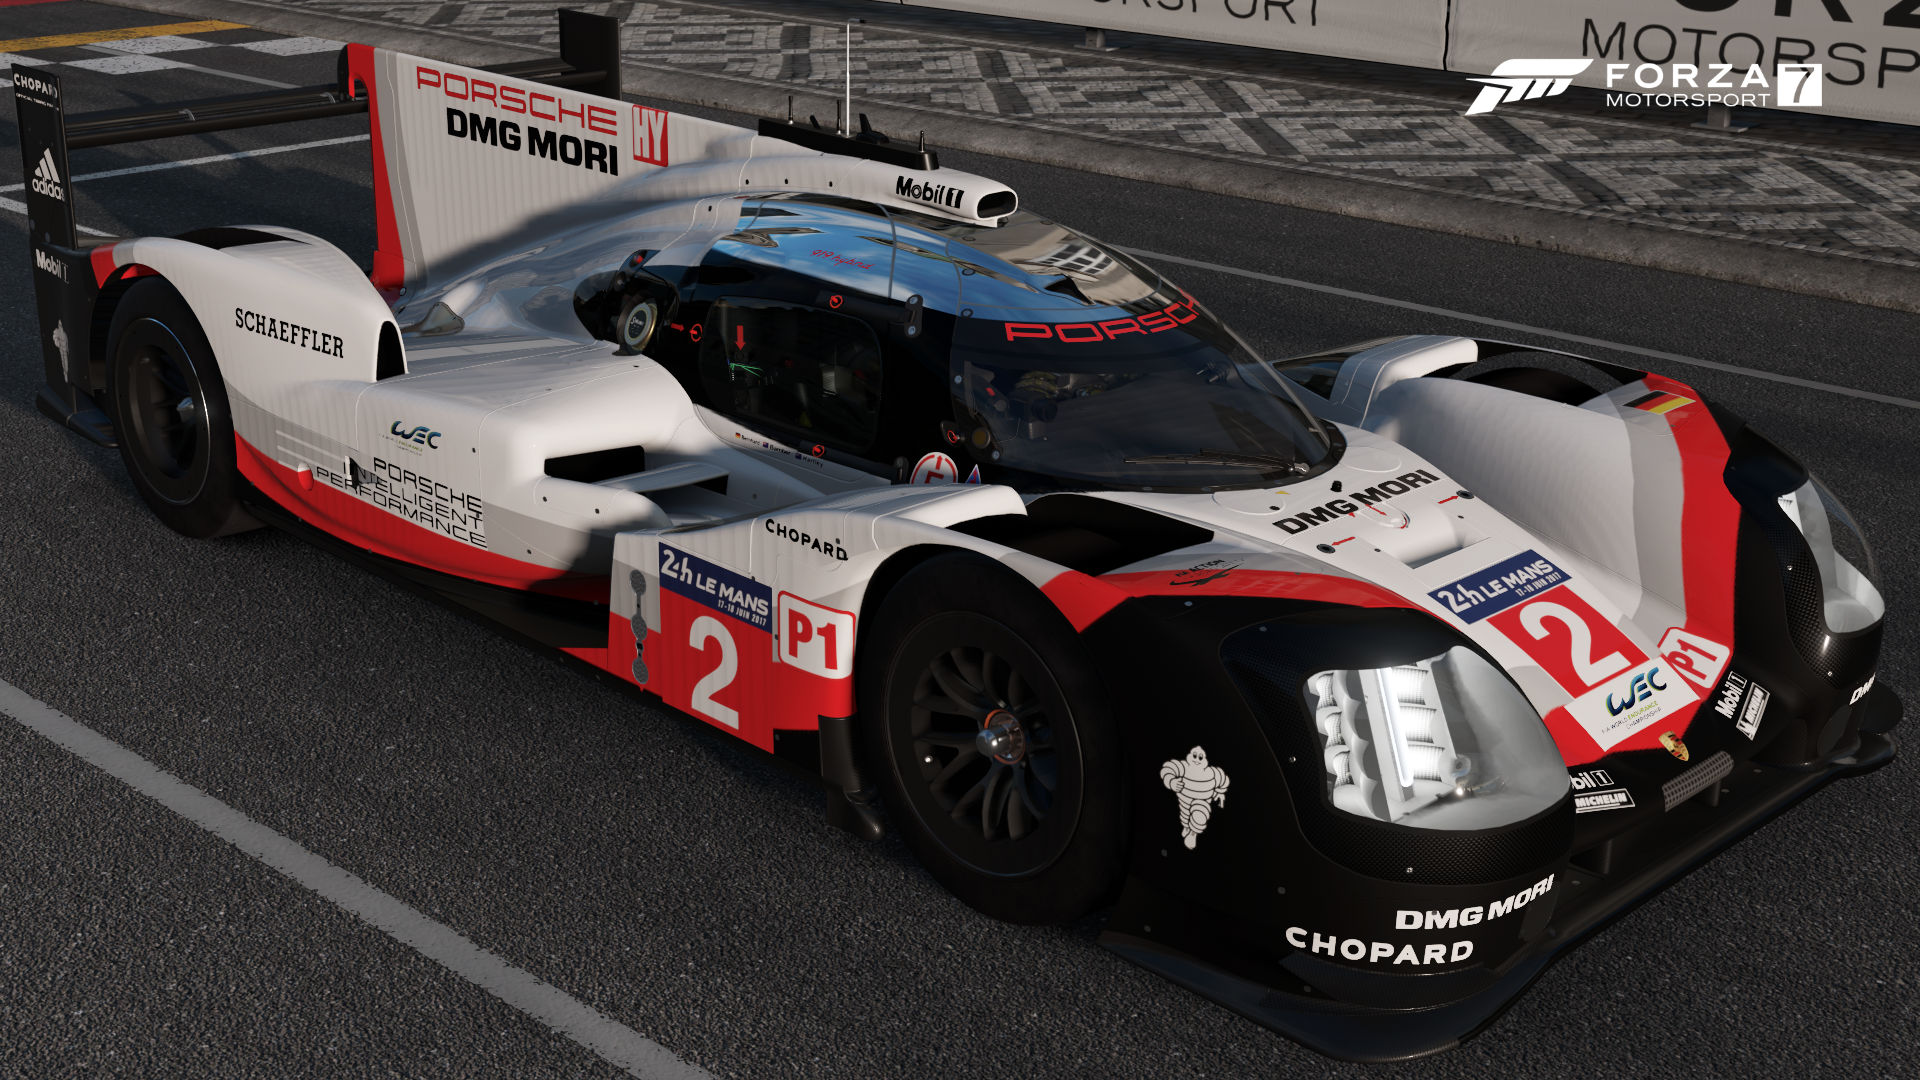 porsche 2 porsche team 919 hybrid forza motorsport wiki fandom powered by wikia. Black Bedroom Furniture Sets. Home Design Ideas